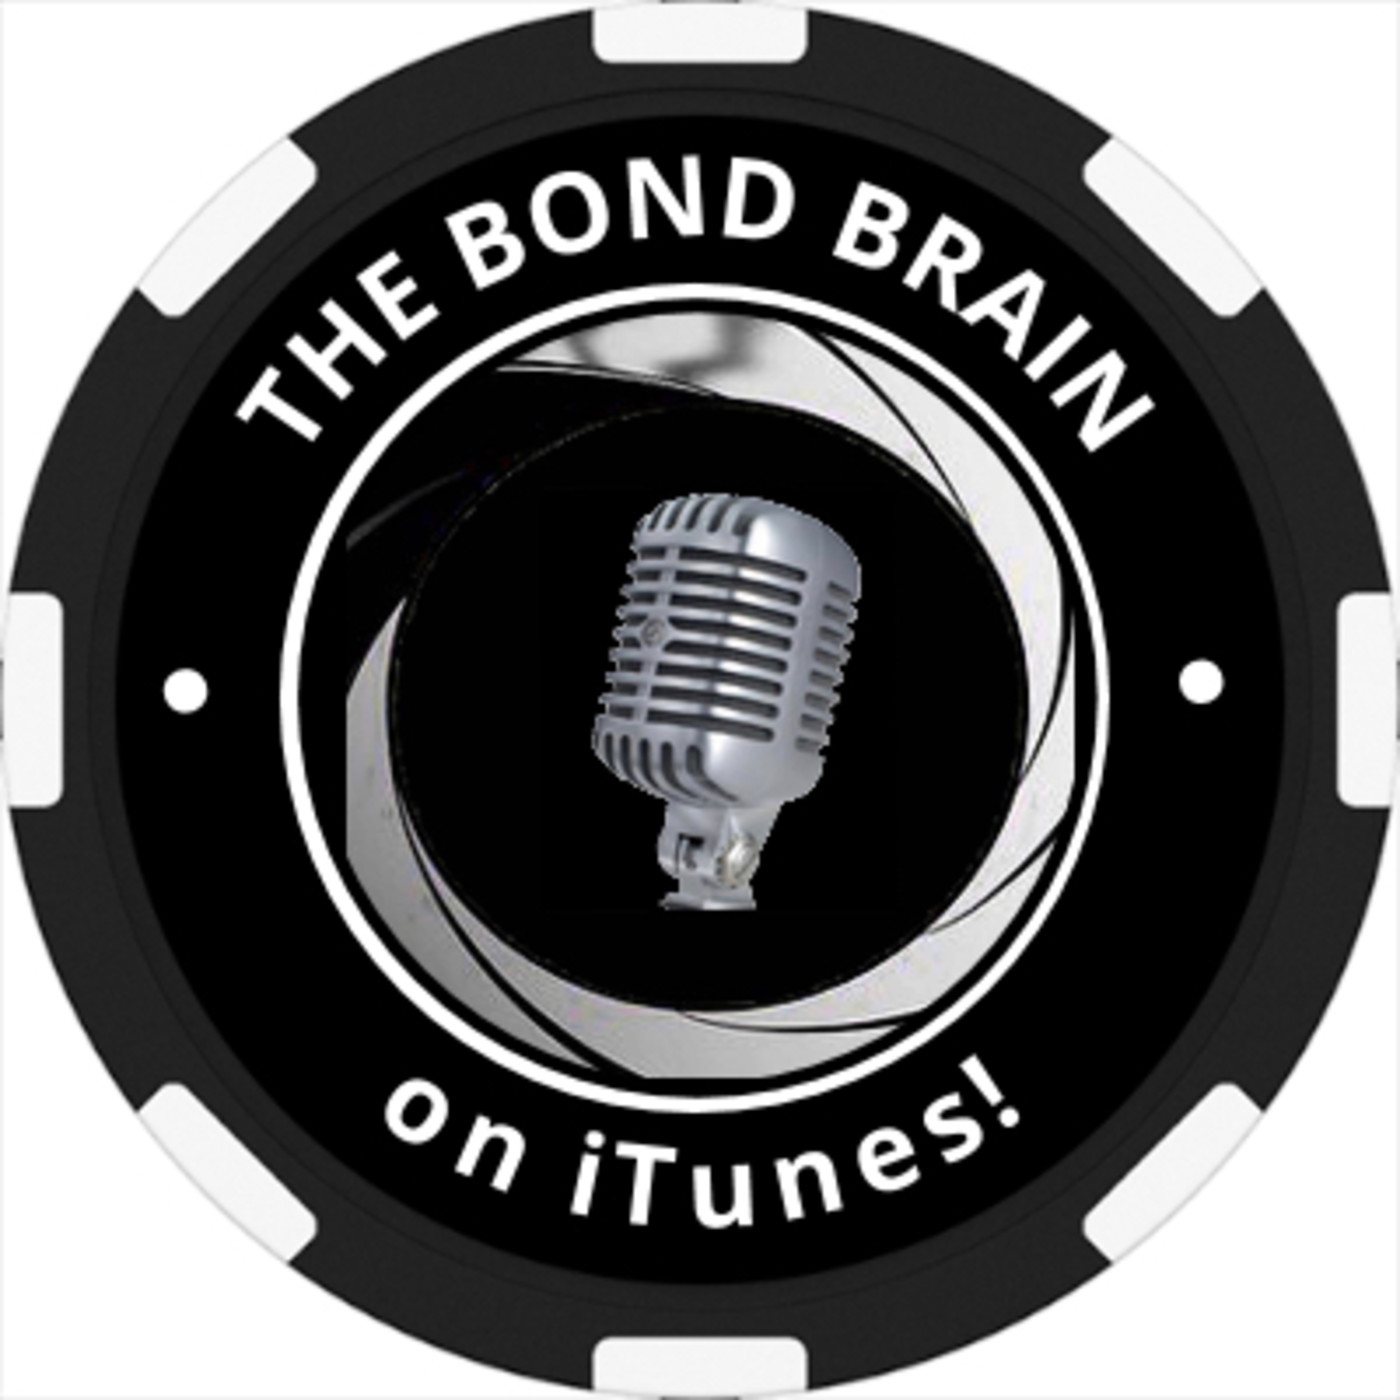 Episode 045 - Better as Bond? The Other Other Fella